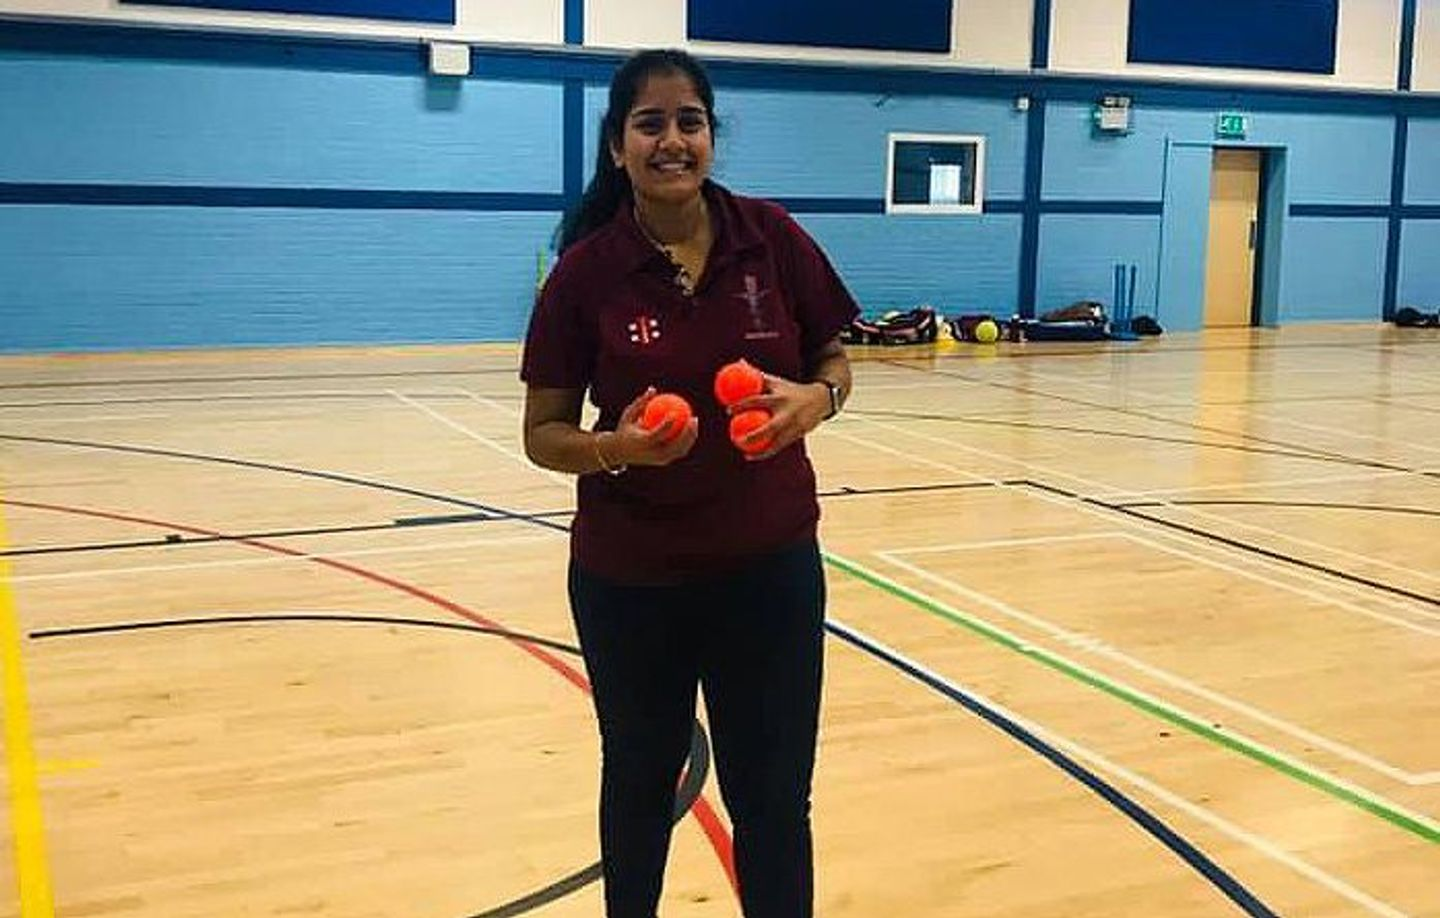 Shivanie Patel has dedicated her time to providing playing opportunities for women and girls in Bradford